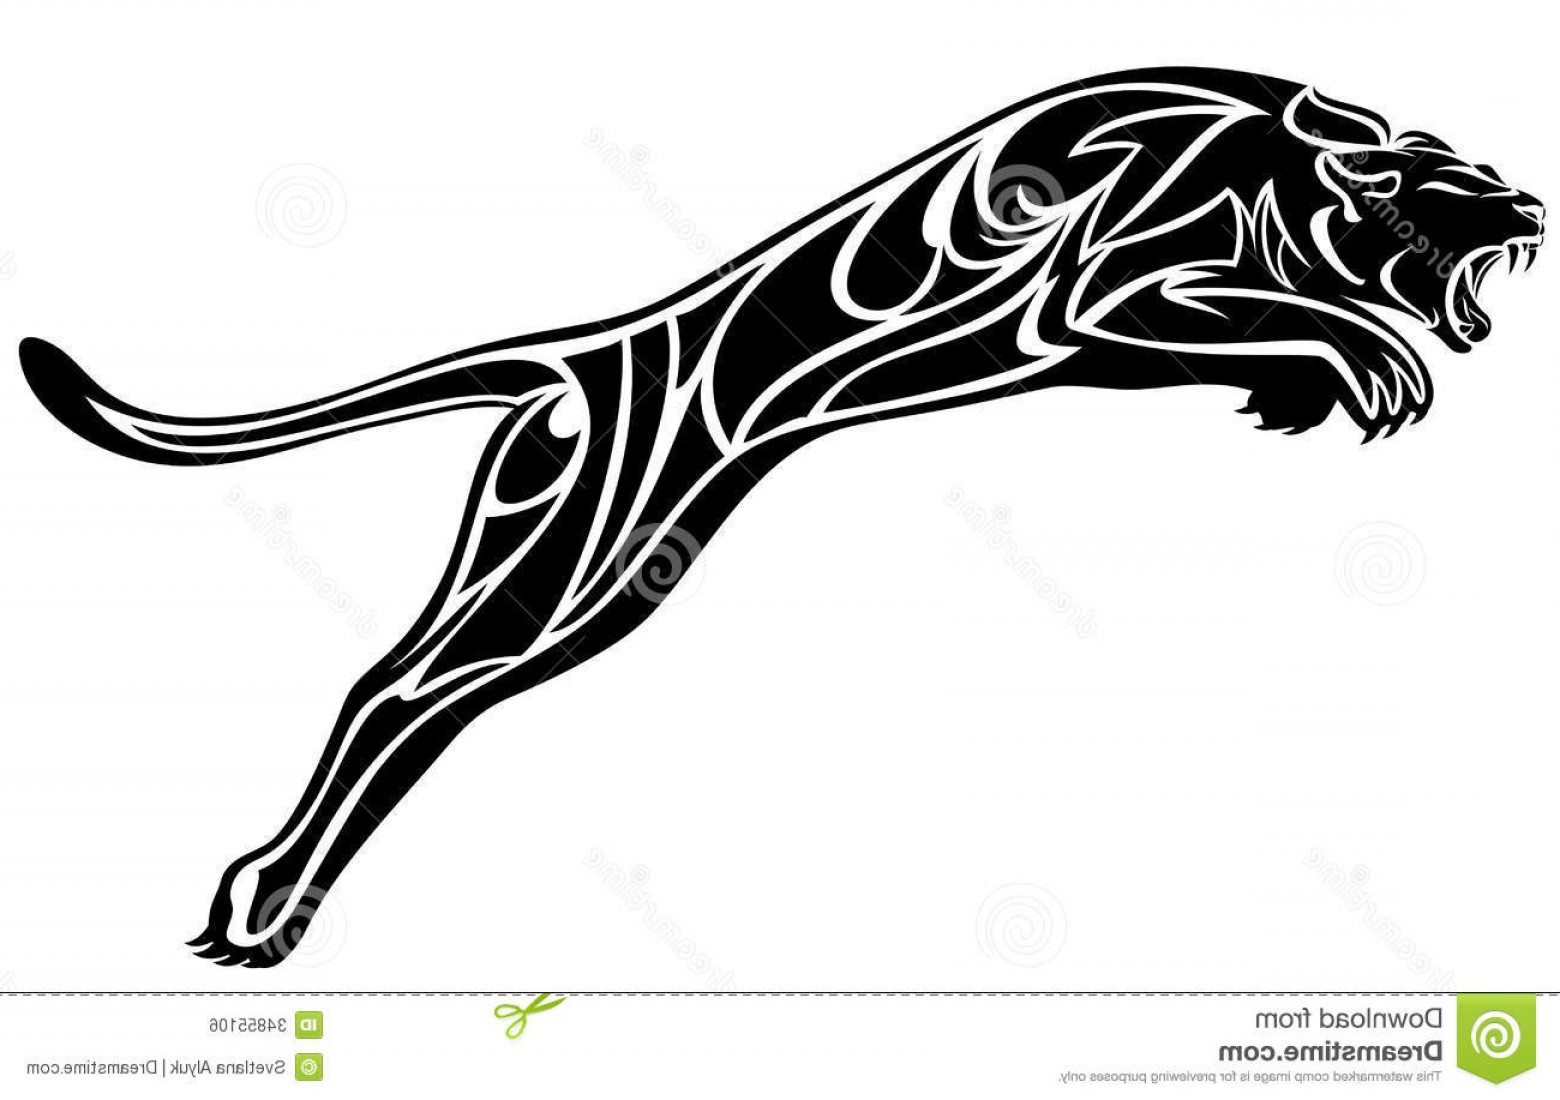 Panther Vector: Royalty Free Stock Image Black Panther Furious Jump White Illustration Image